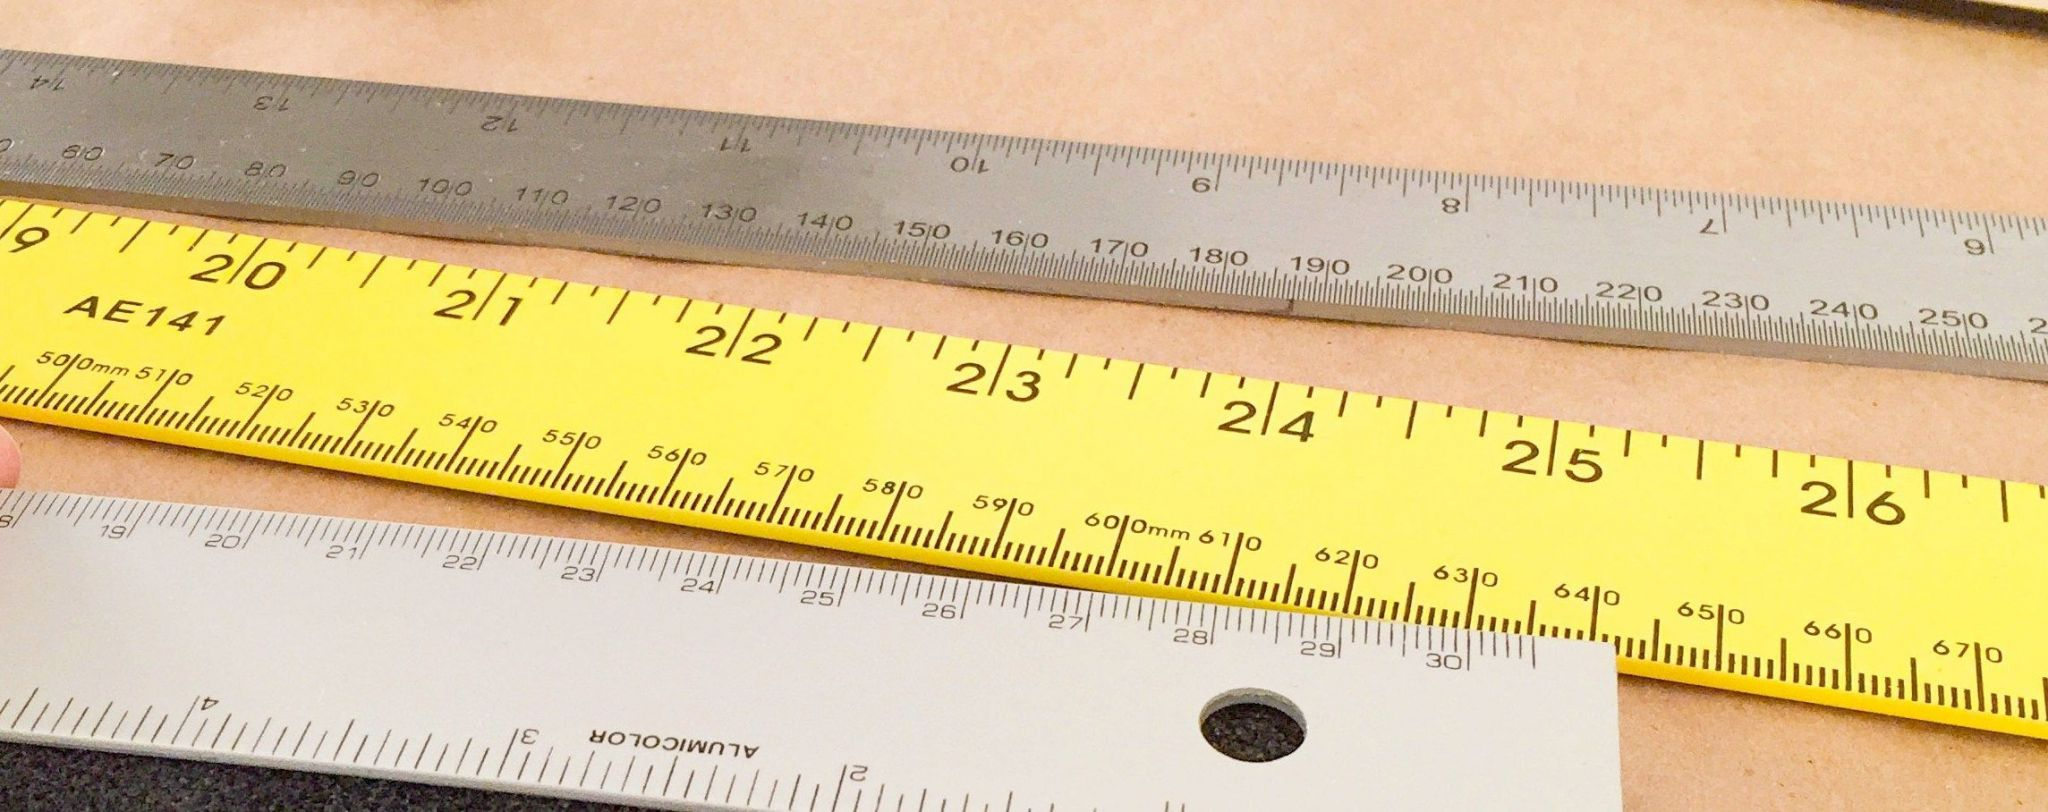 Blank Tape Measure Worksheet